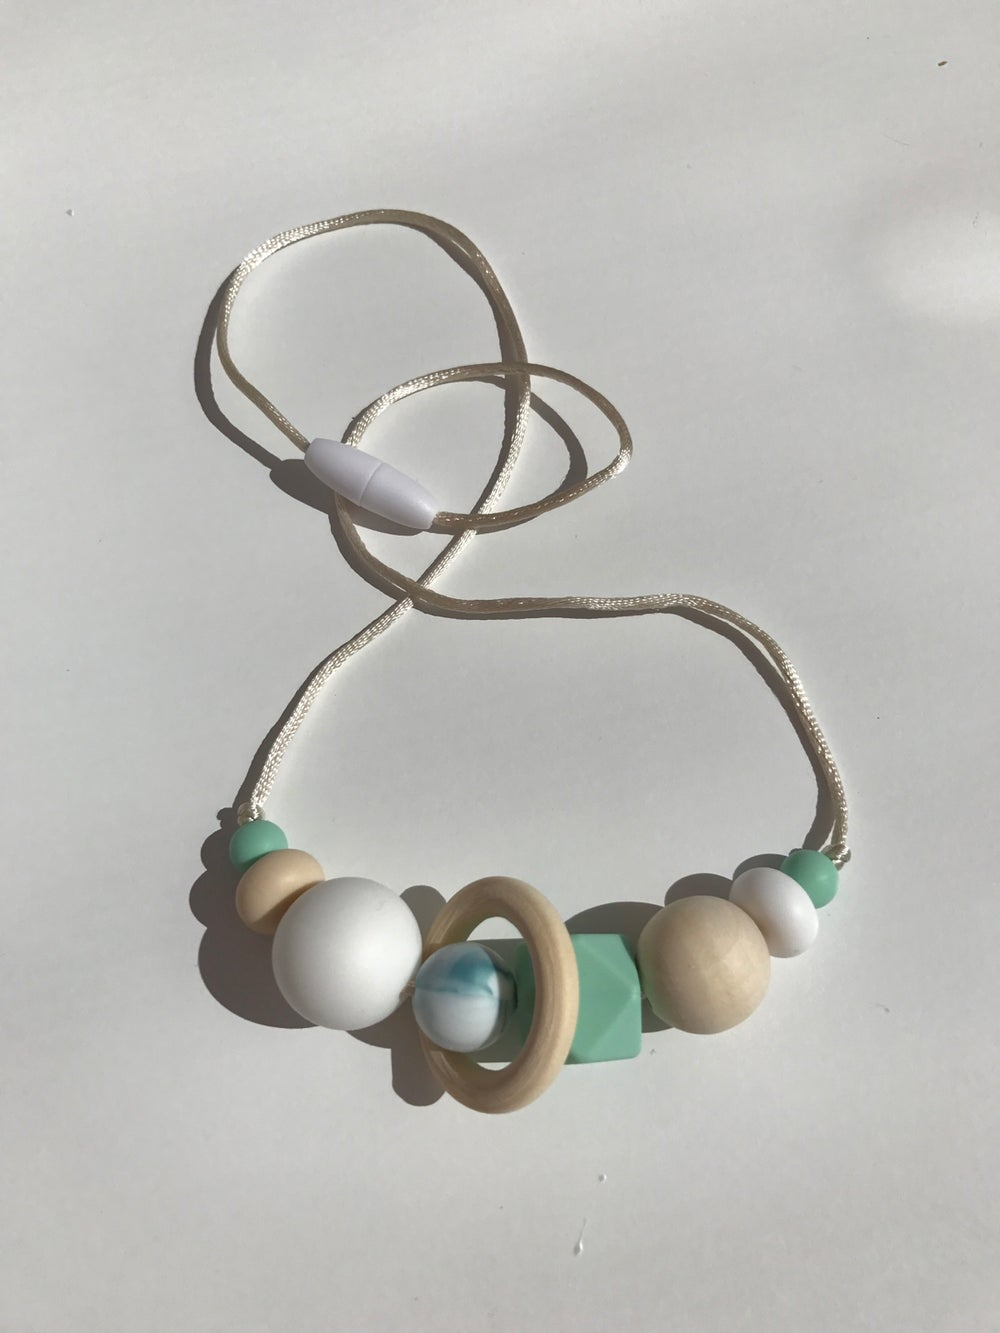 Image of 'Sand & Sea' Sensory Silicone Bead Necklace (BPA free)